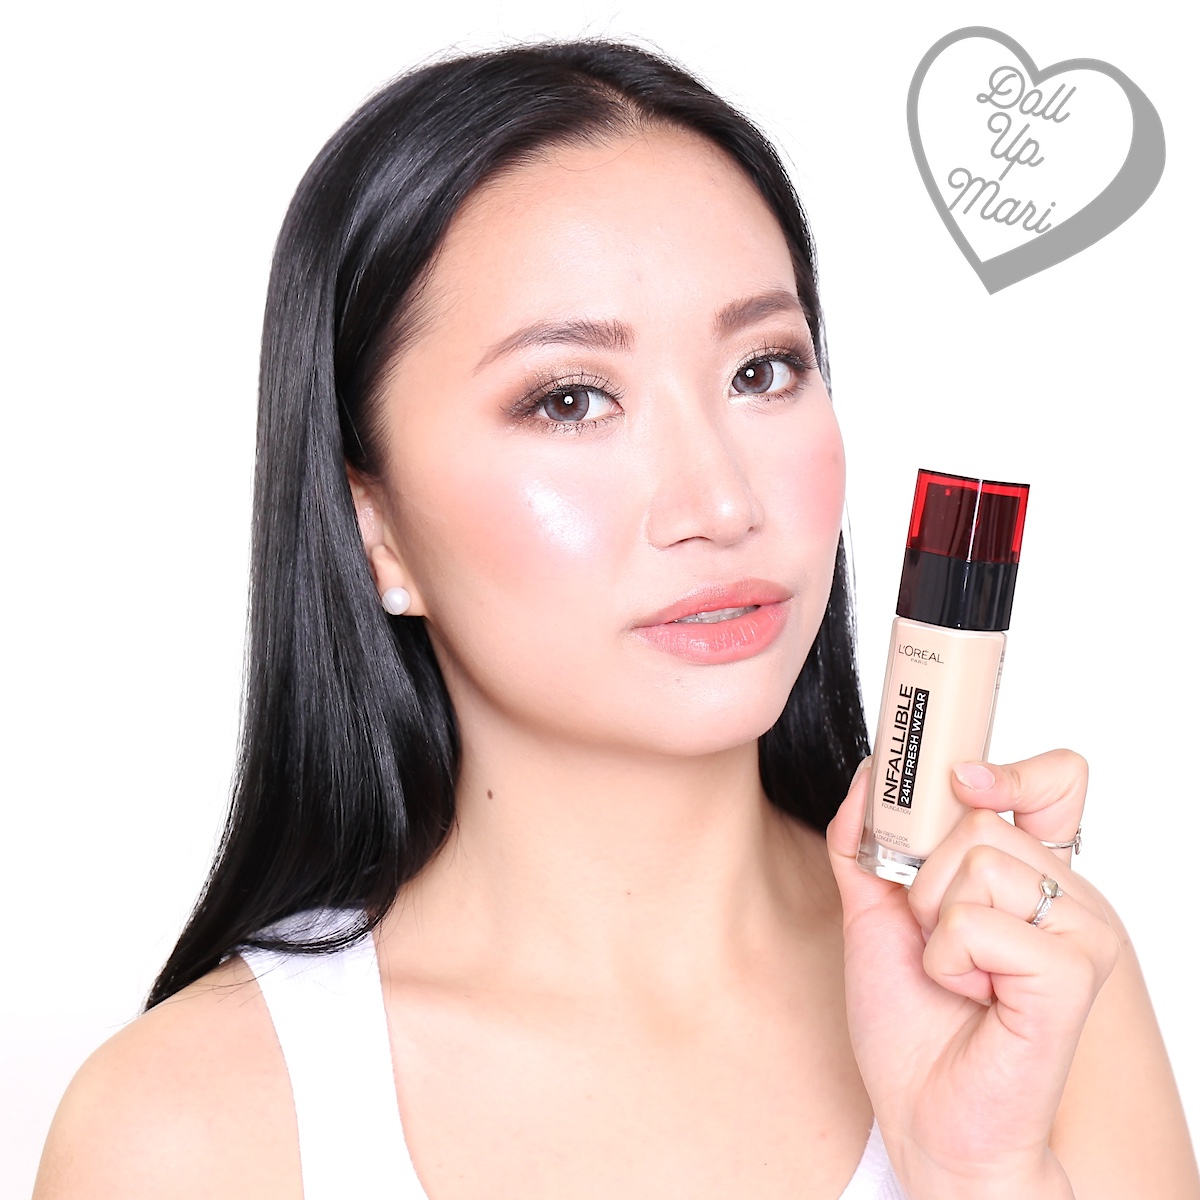 Wearing L'Oréal Paris Infallible 24HR Fresh Wear Liquid Foundation SPF25PA+++ in shade Ivory